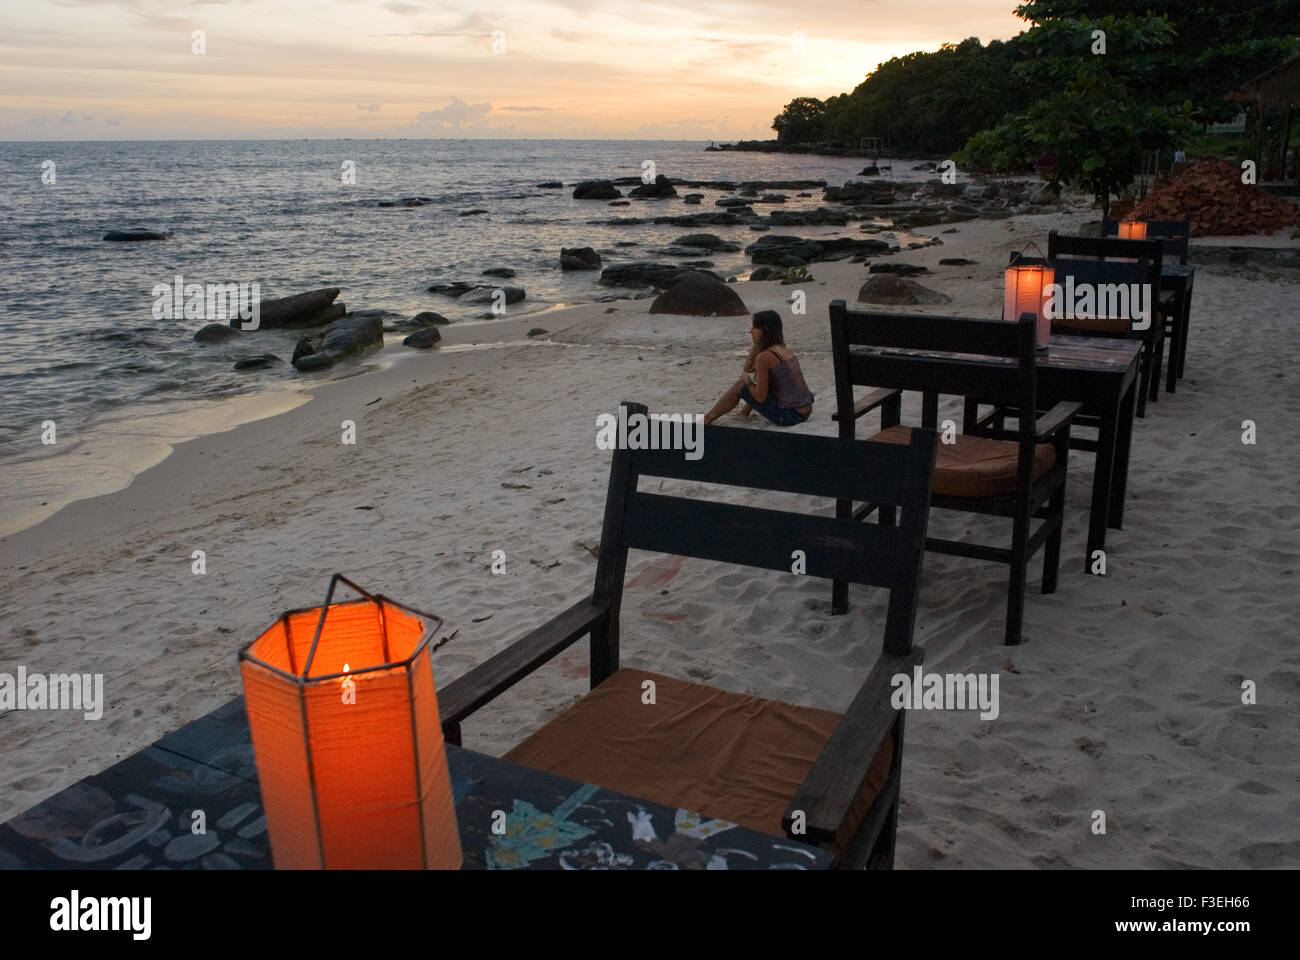 Tables of some of the restaurants on the beach. Sihanoukville beach. Some of these Sihanoukville beaches are crowded - Stock Image